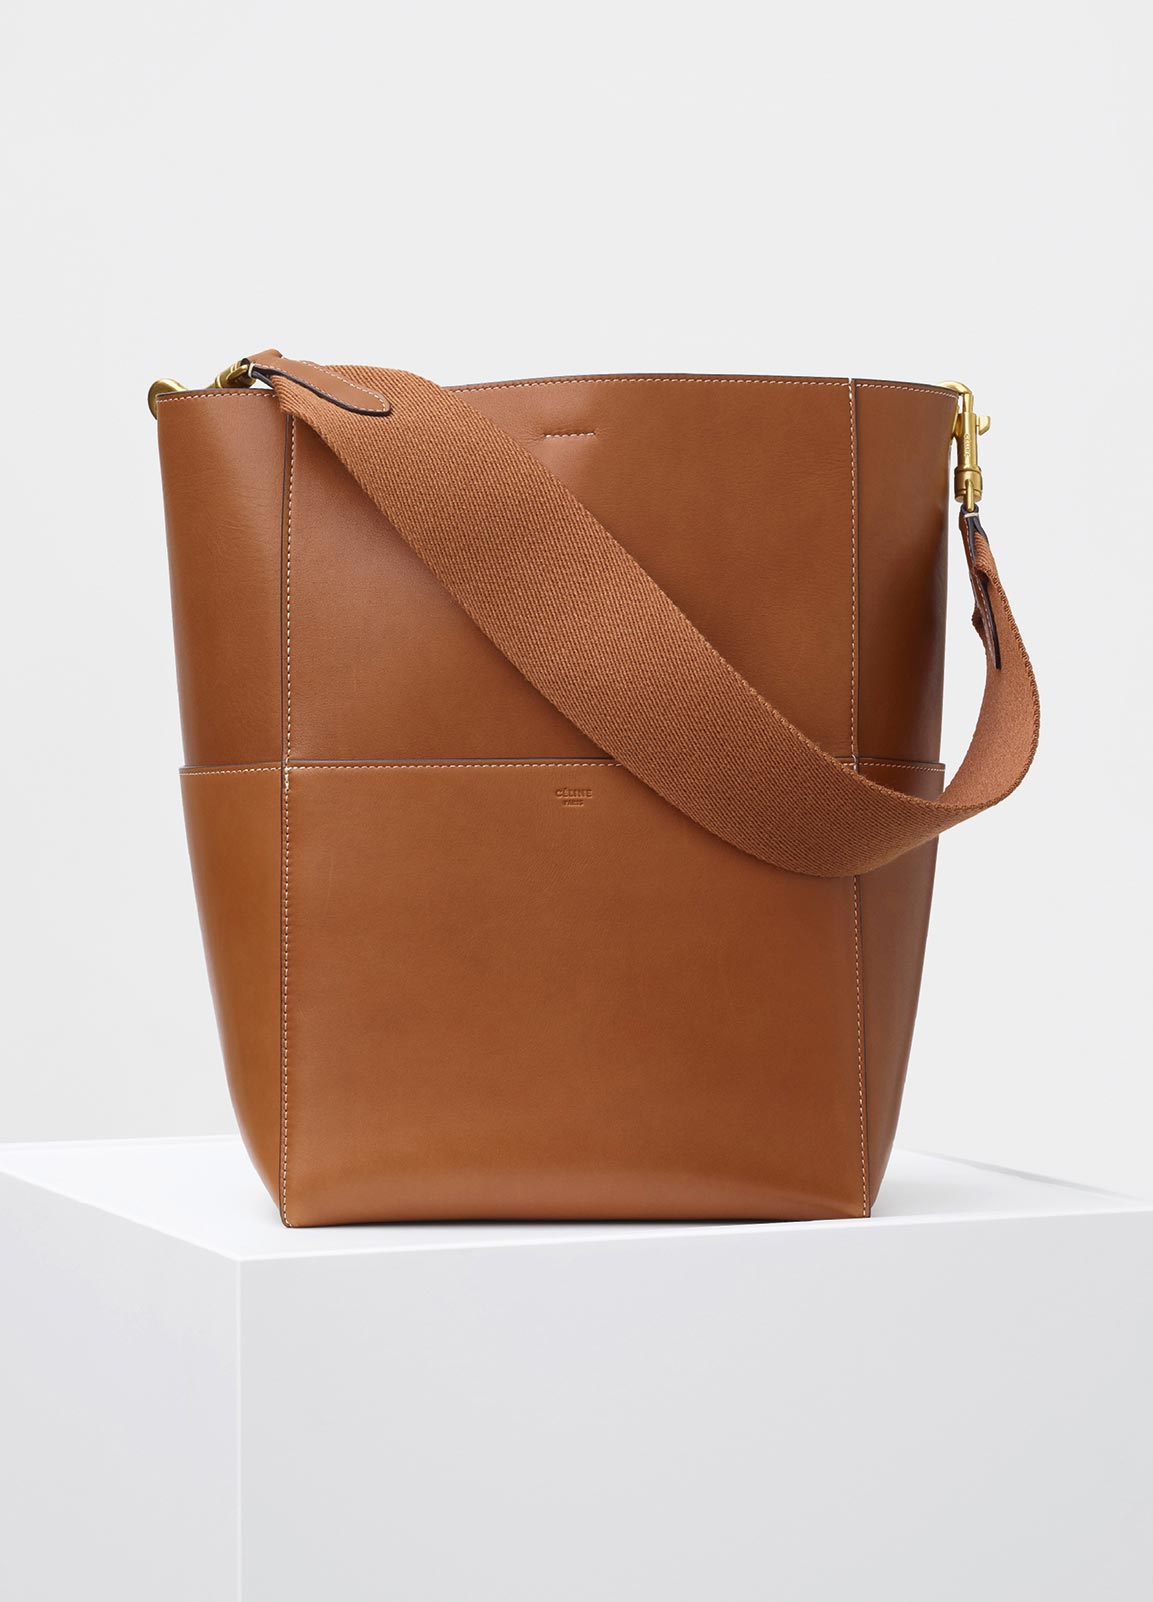 celine tan bag